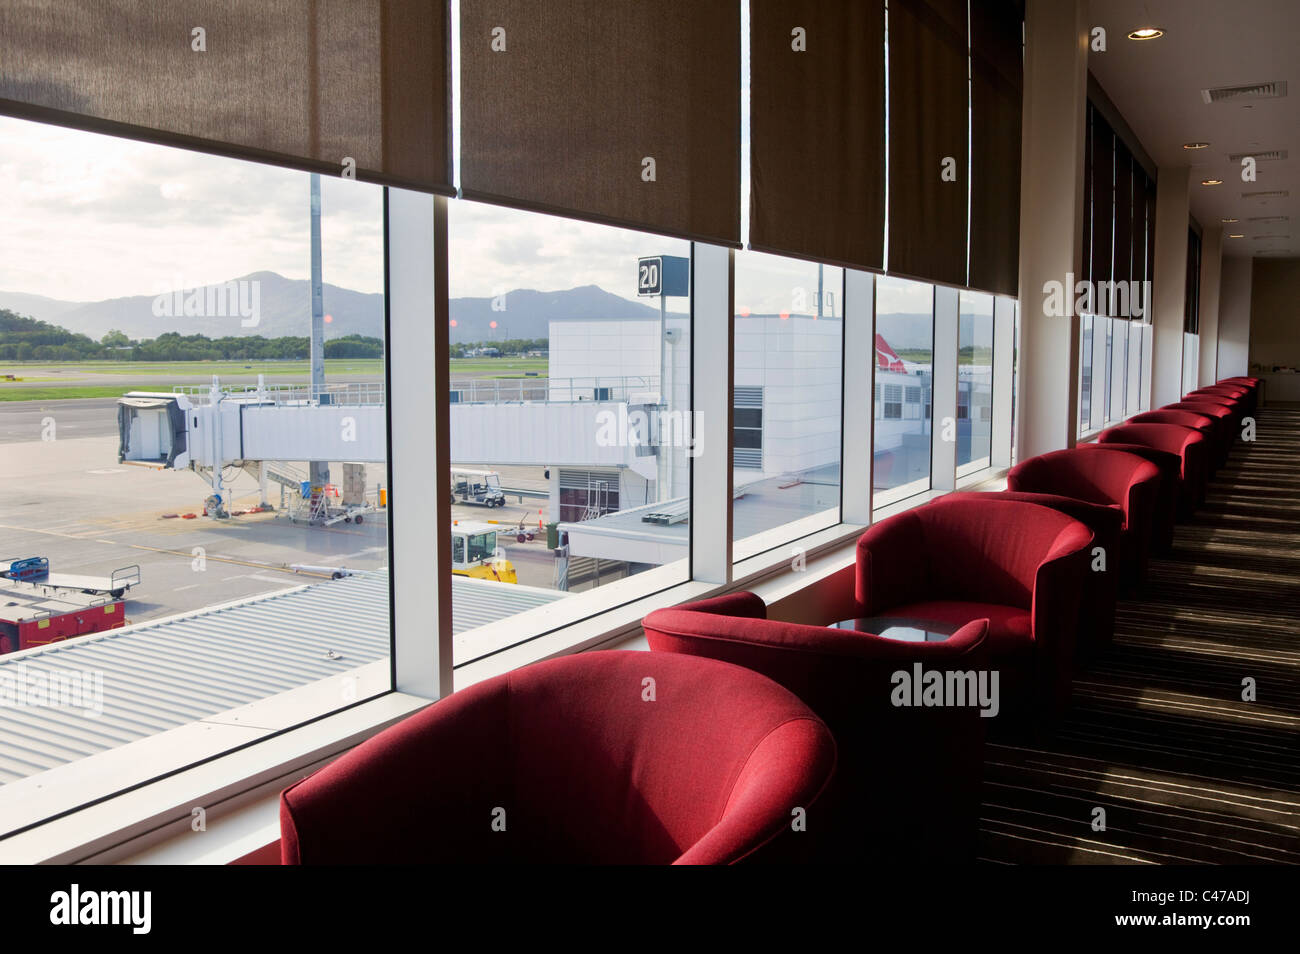 Qantas Club Lounge at Cairns Domestic Airport. Cairns, Queensland, Australia - Stock Image